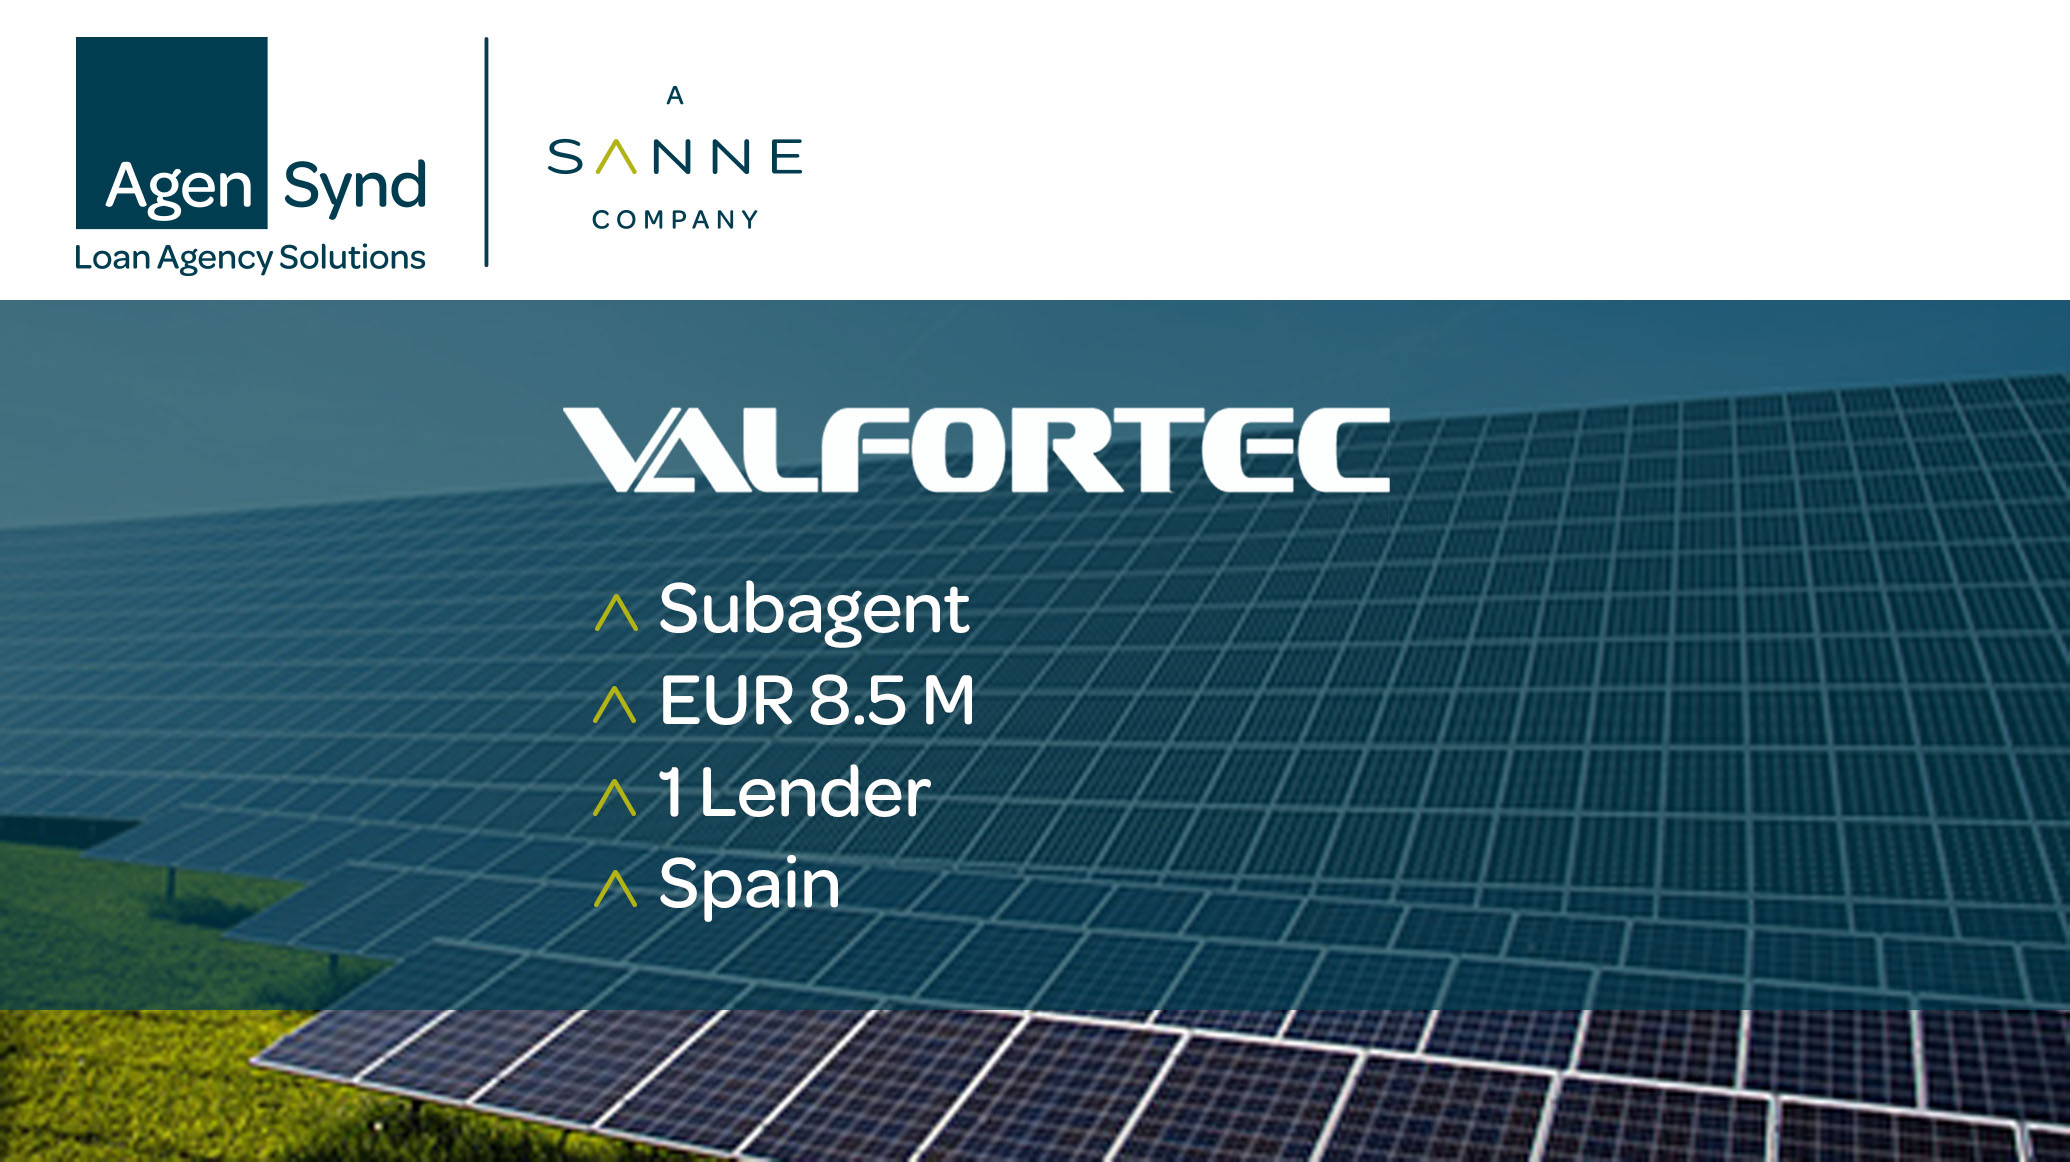 AgenSynd Valfortec